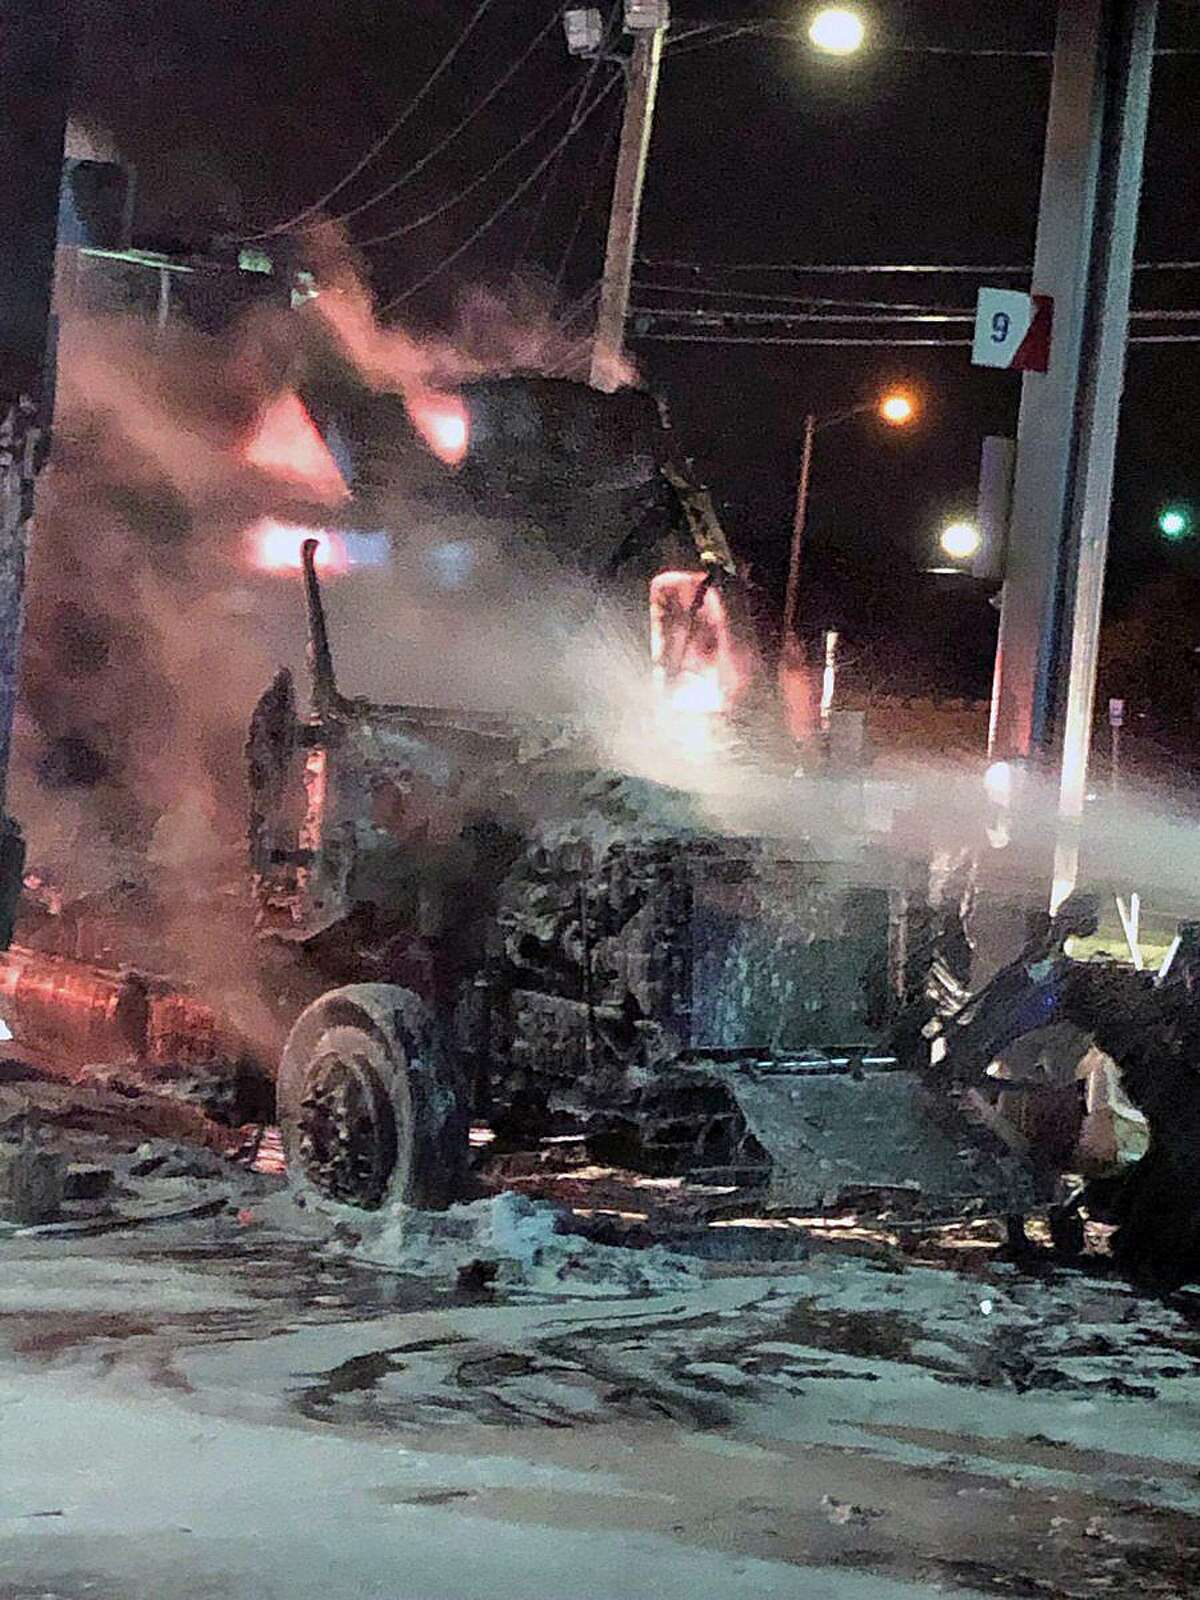 Ther was a fire at Wheels in Milford, Conn., on Jan. 3, 2019.